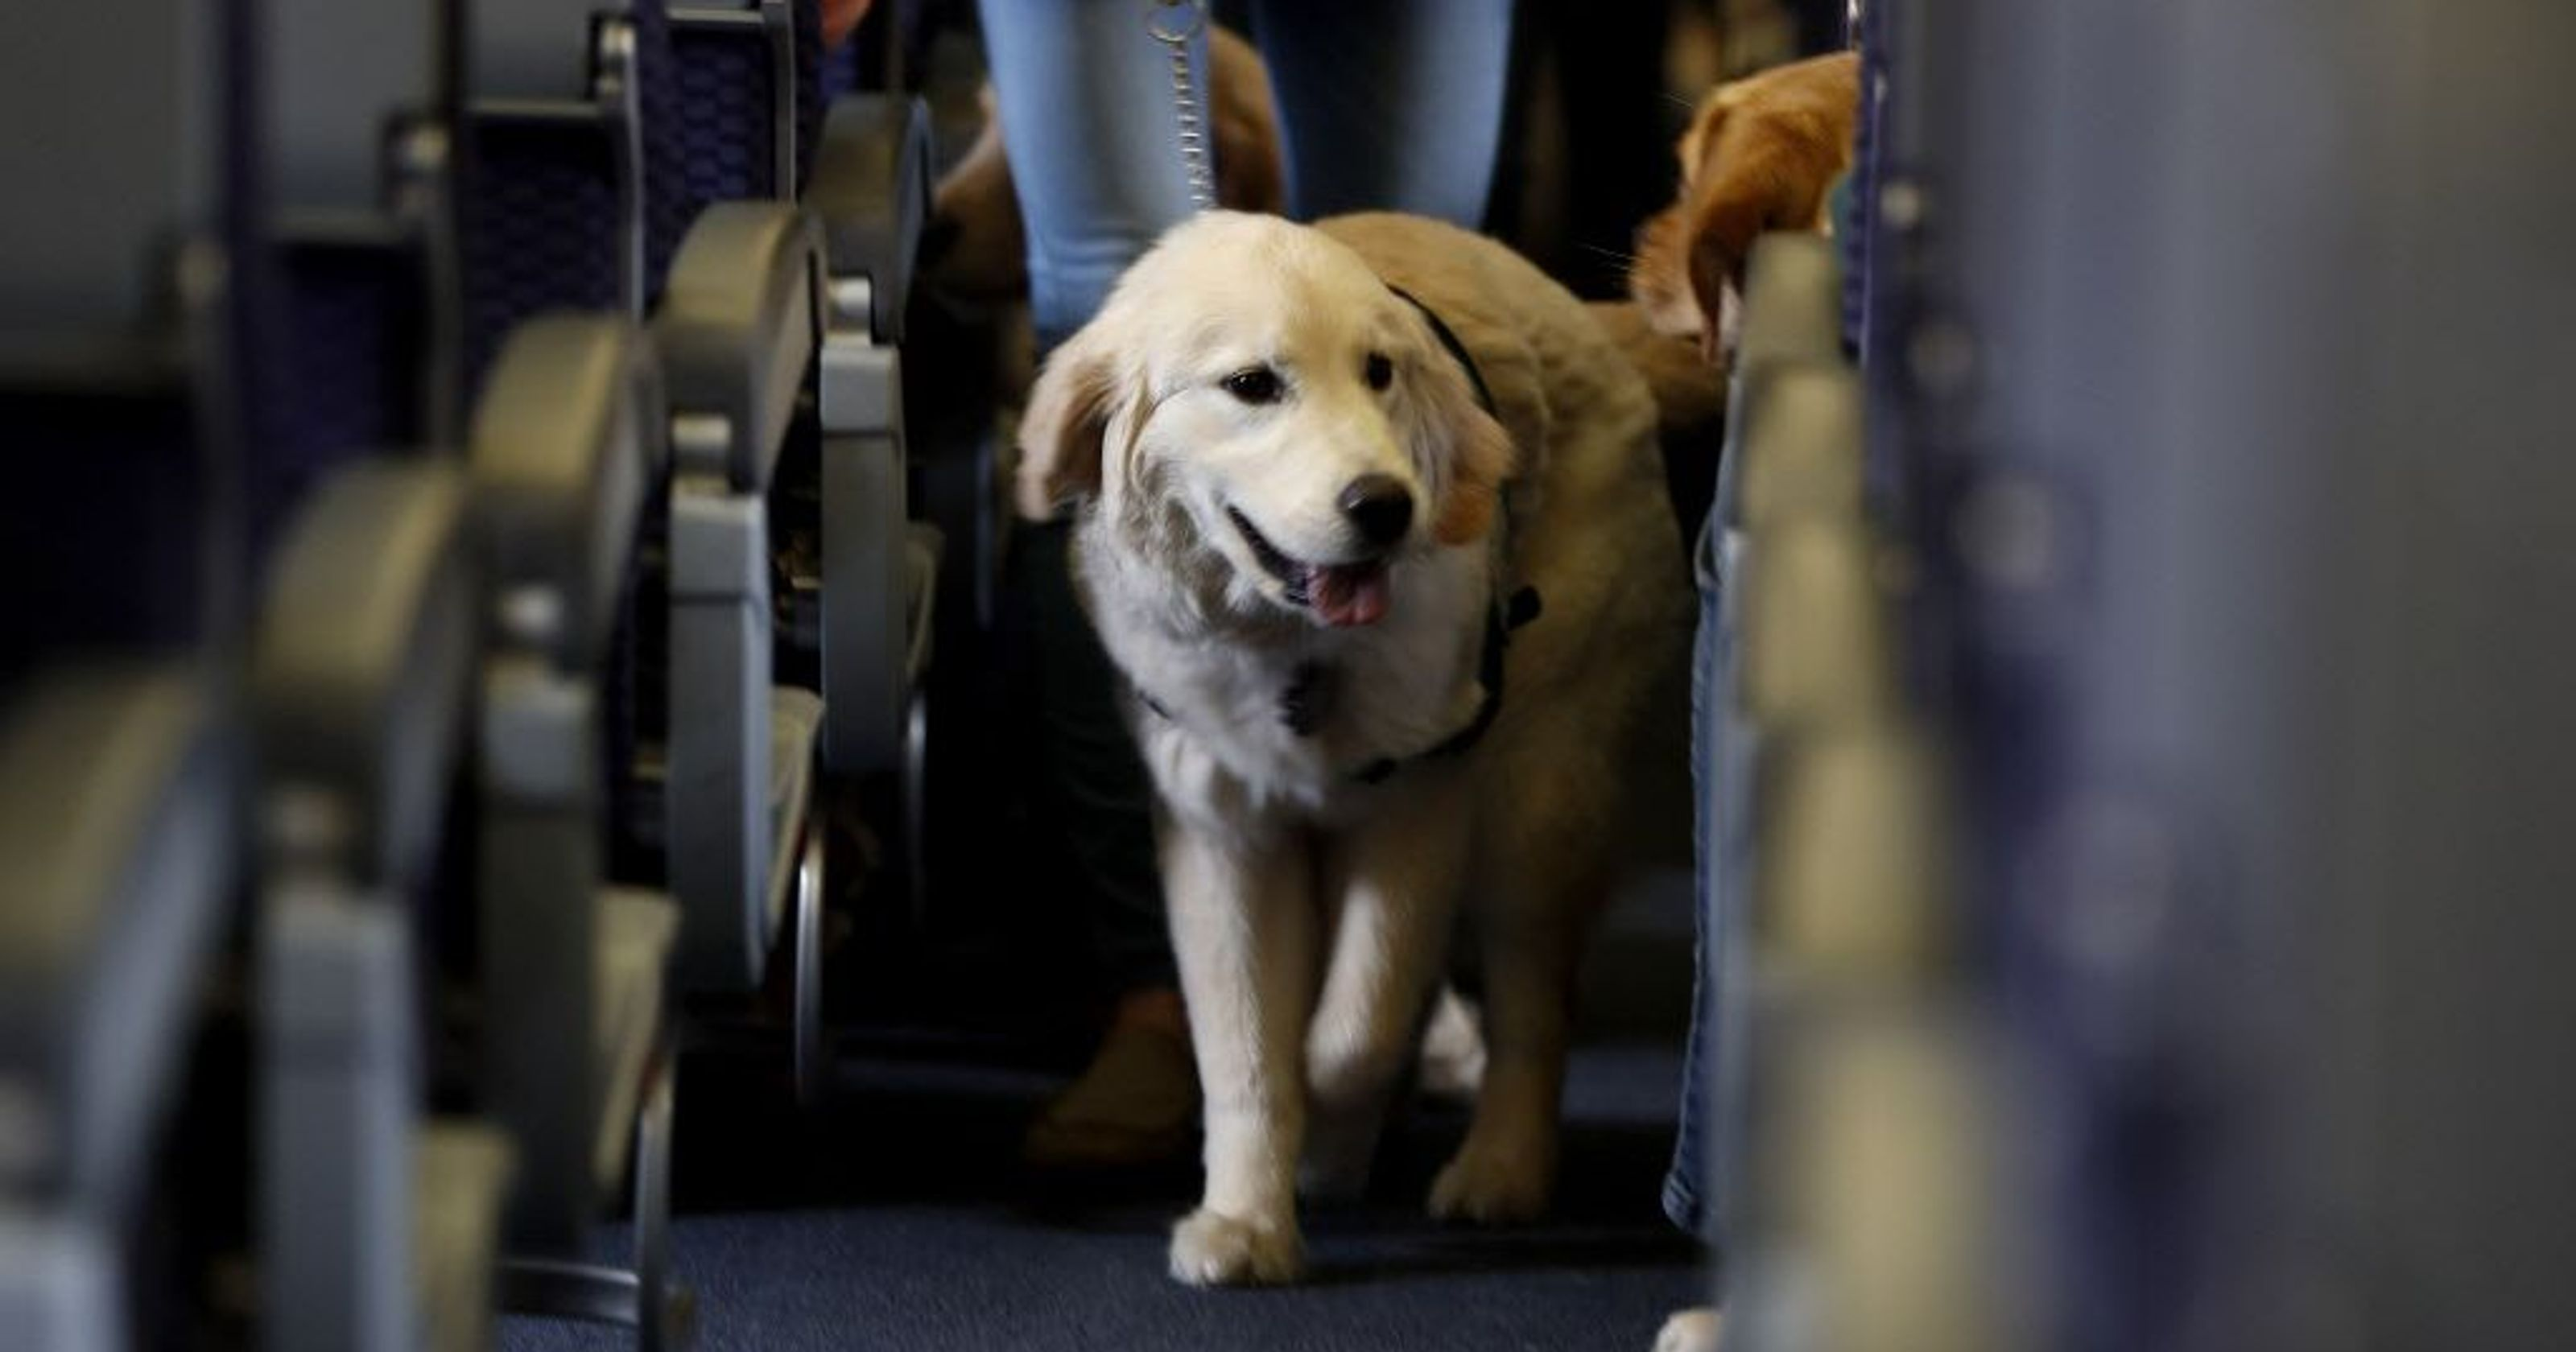 United Airlines Tightens Rules on Emotional Support